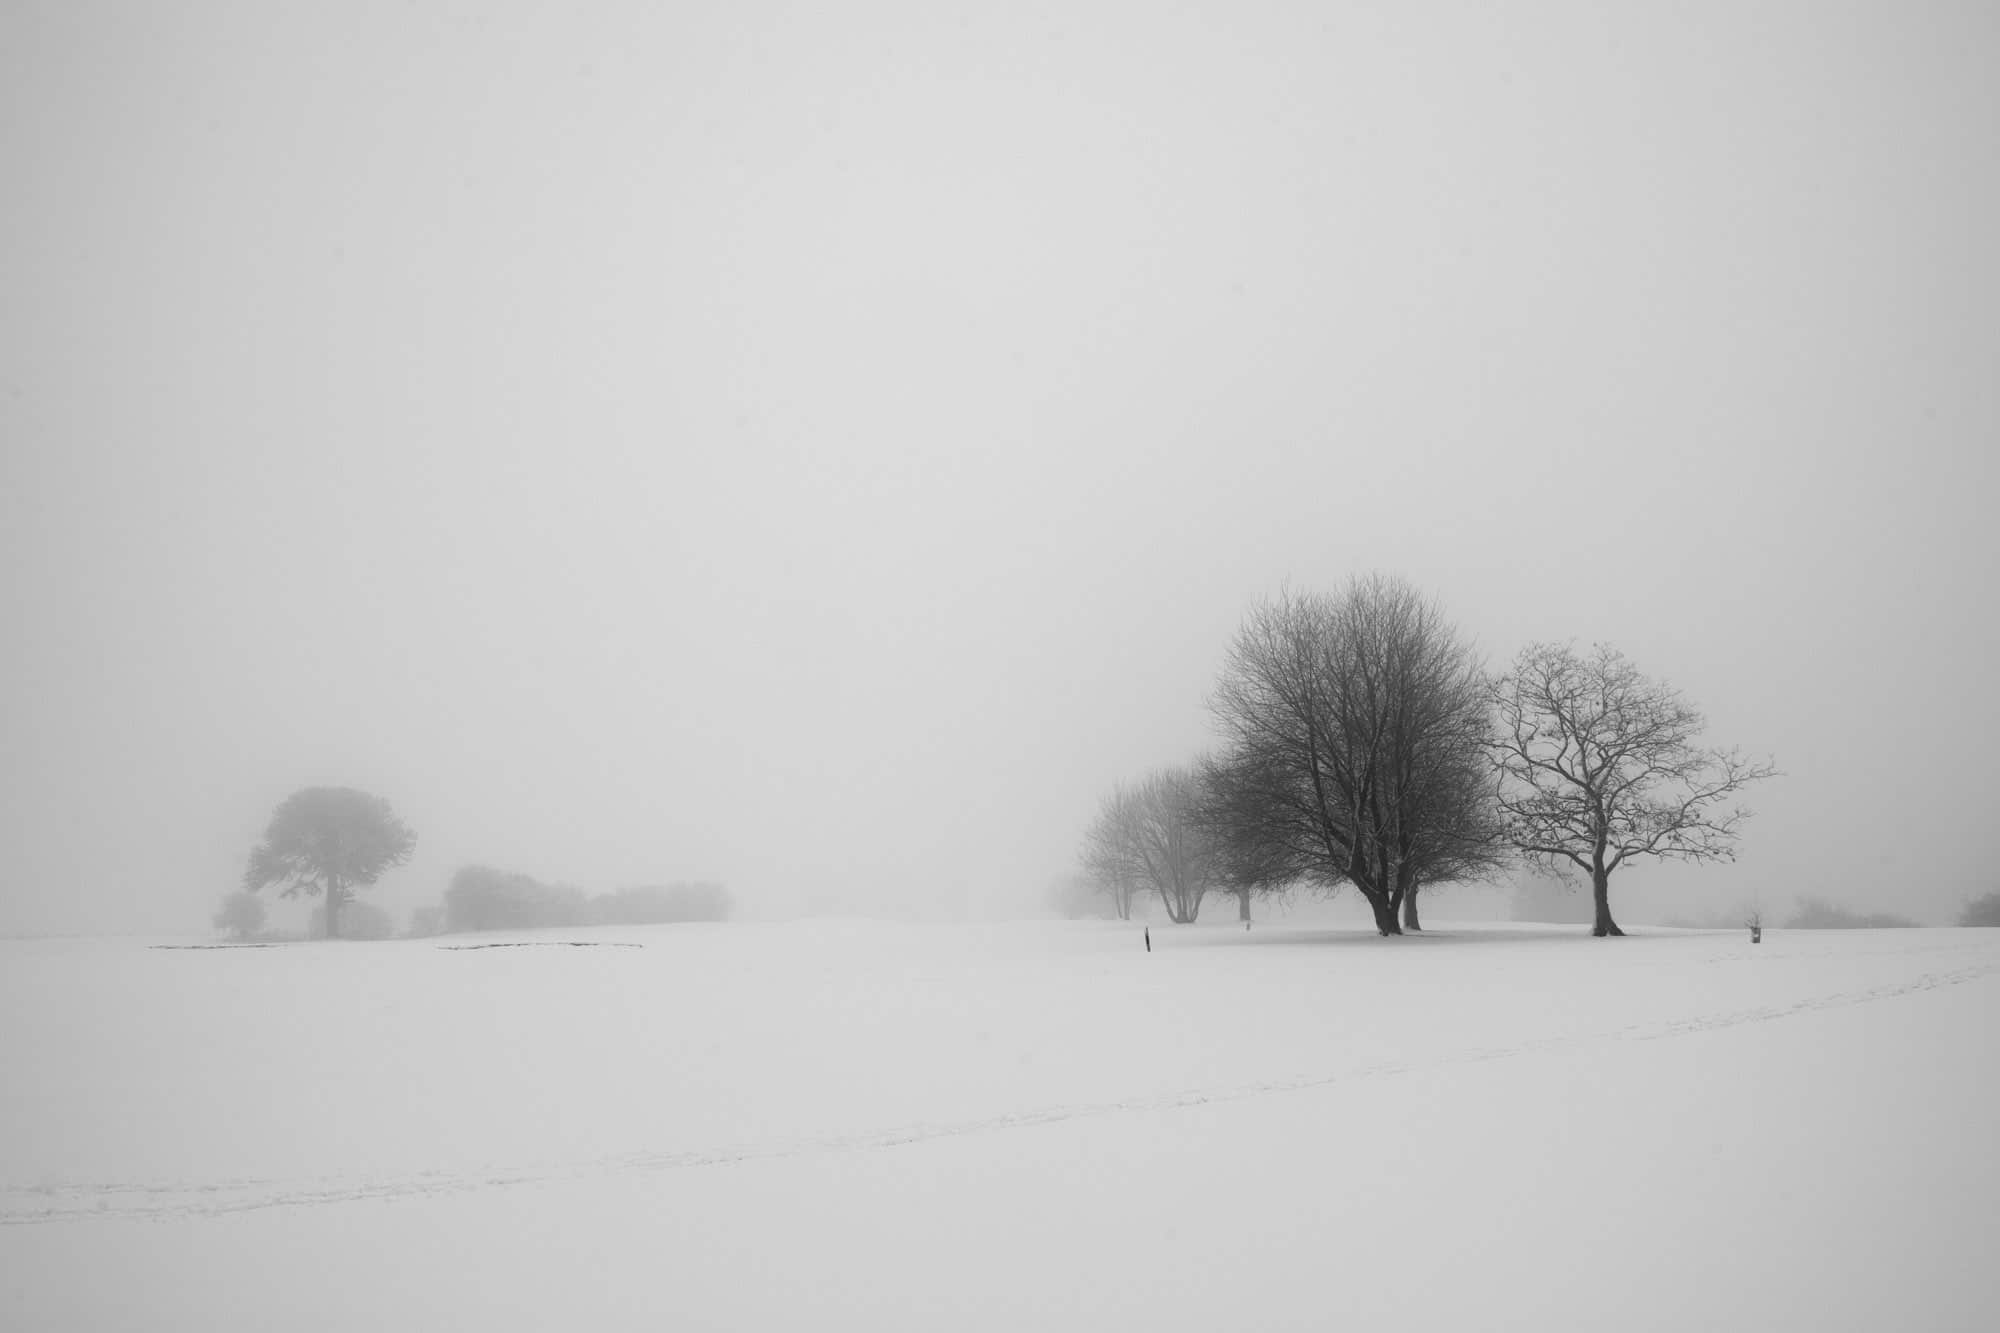 daventry_snow_jan21_pictures55_0001